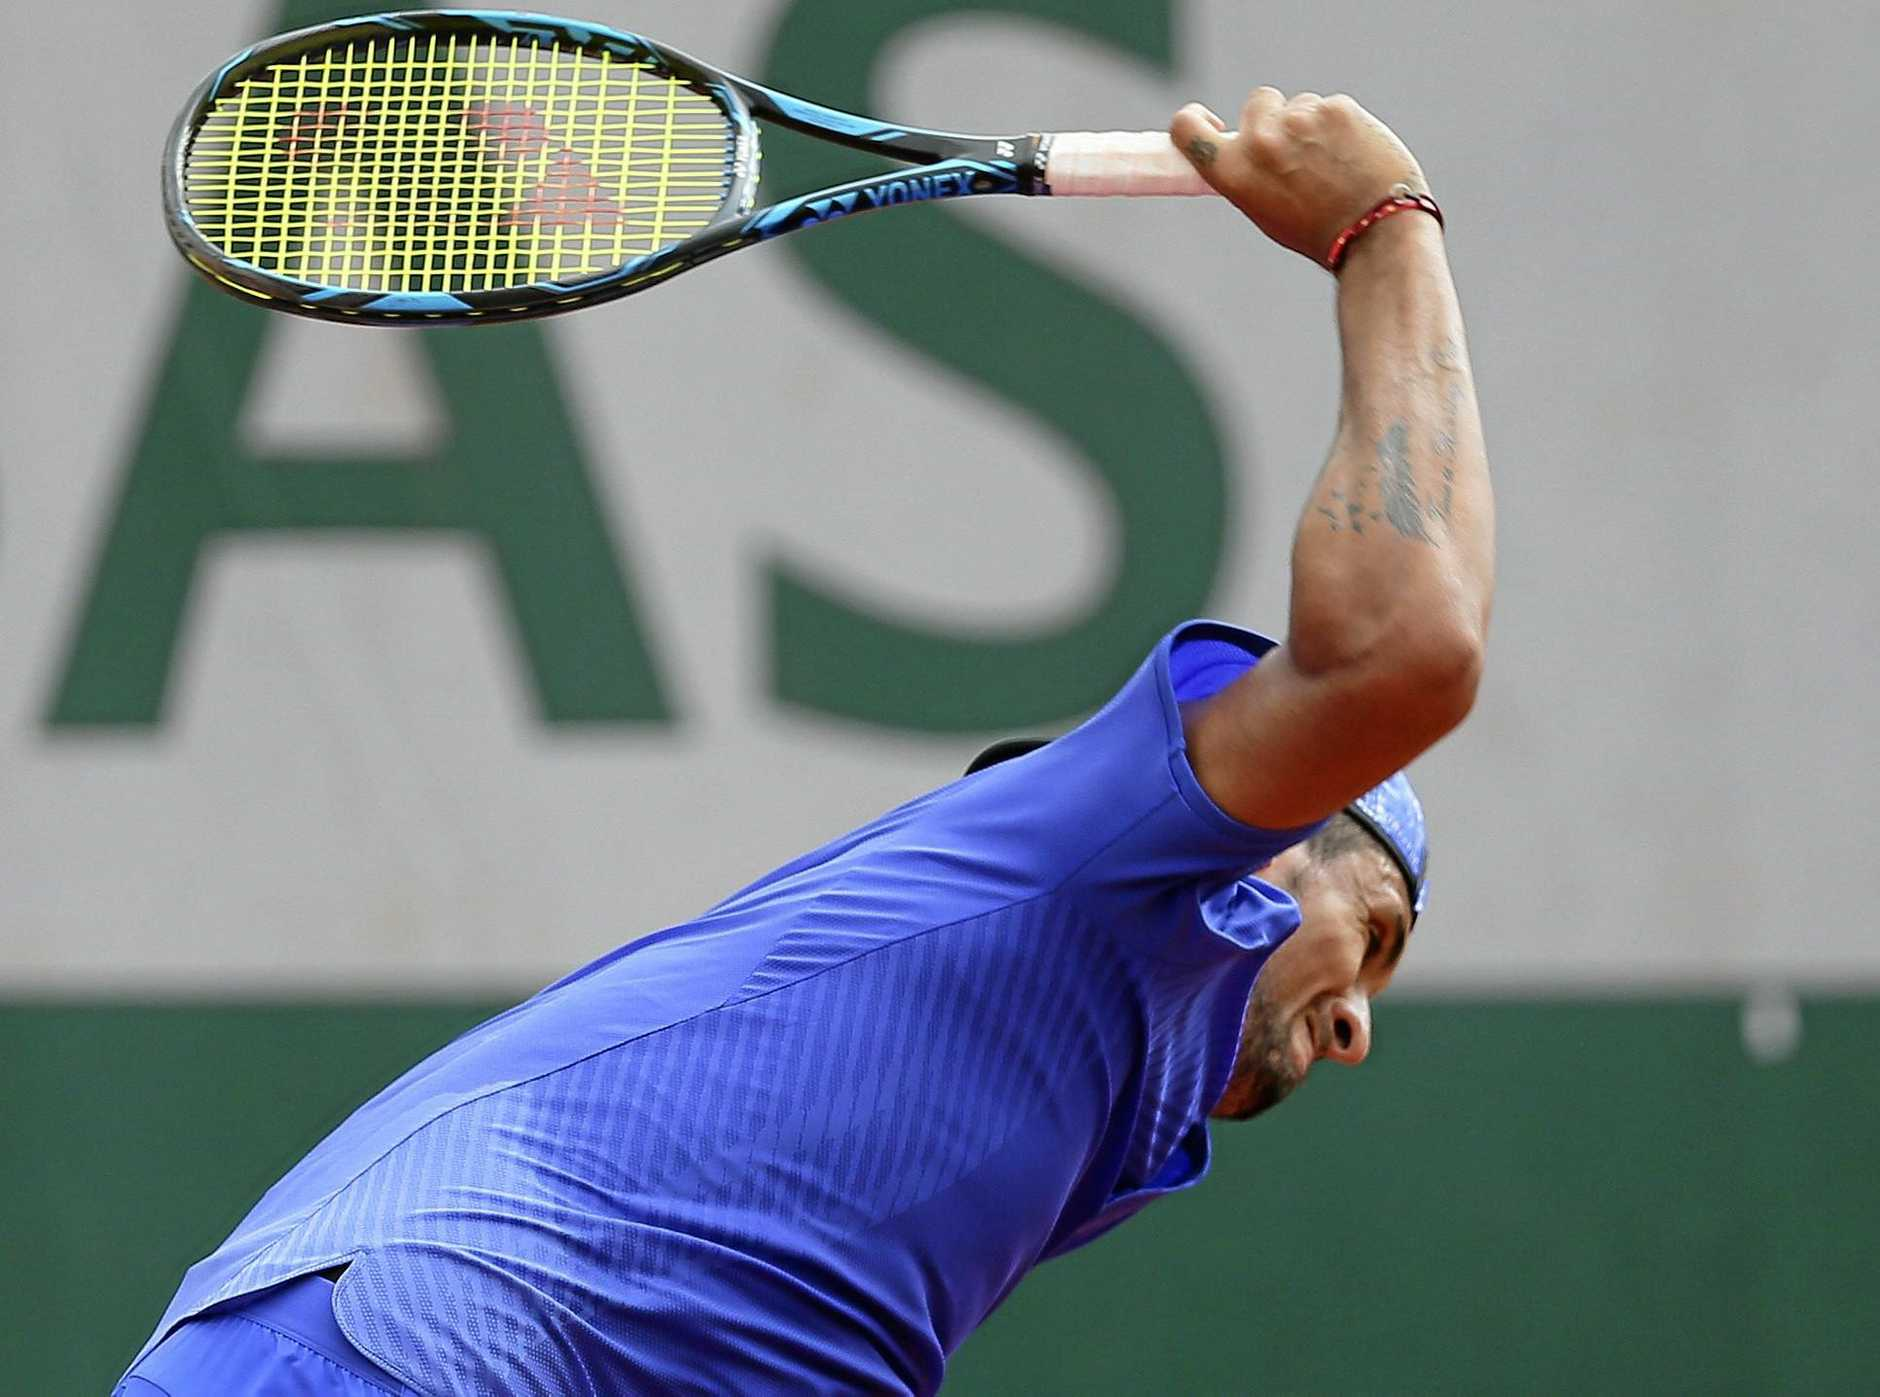 Australia's Nick Kyrgios breaks his racket in his second round match against South Africa's Kevin Anderson at the French Open.